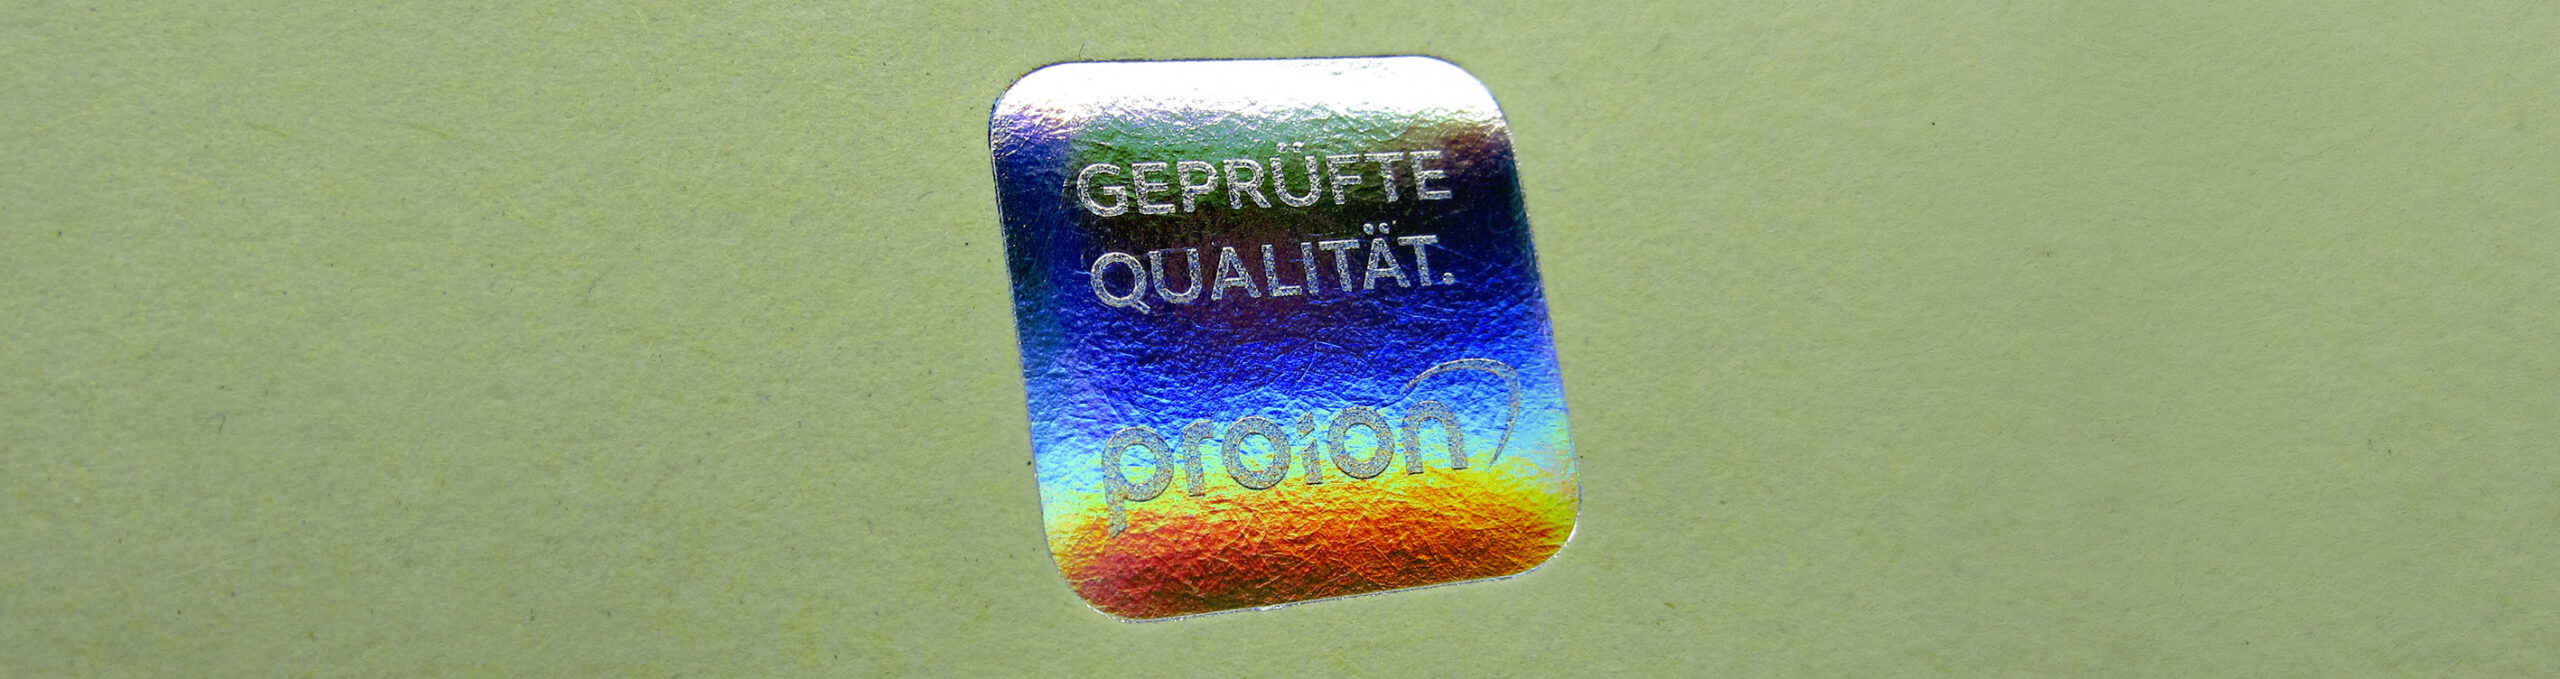 Foil Stamping Proion